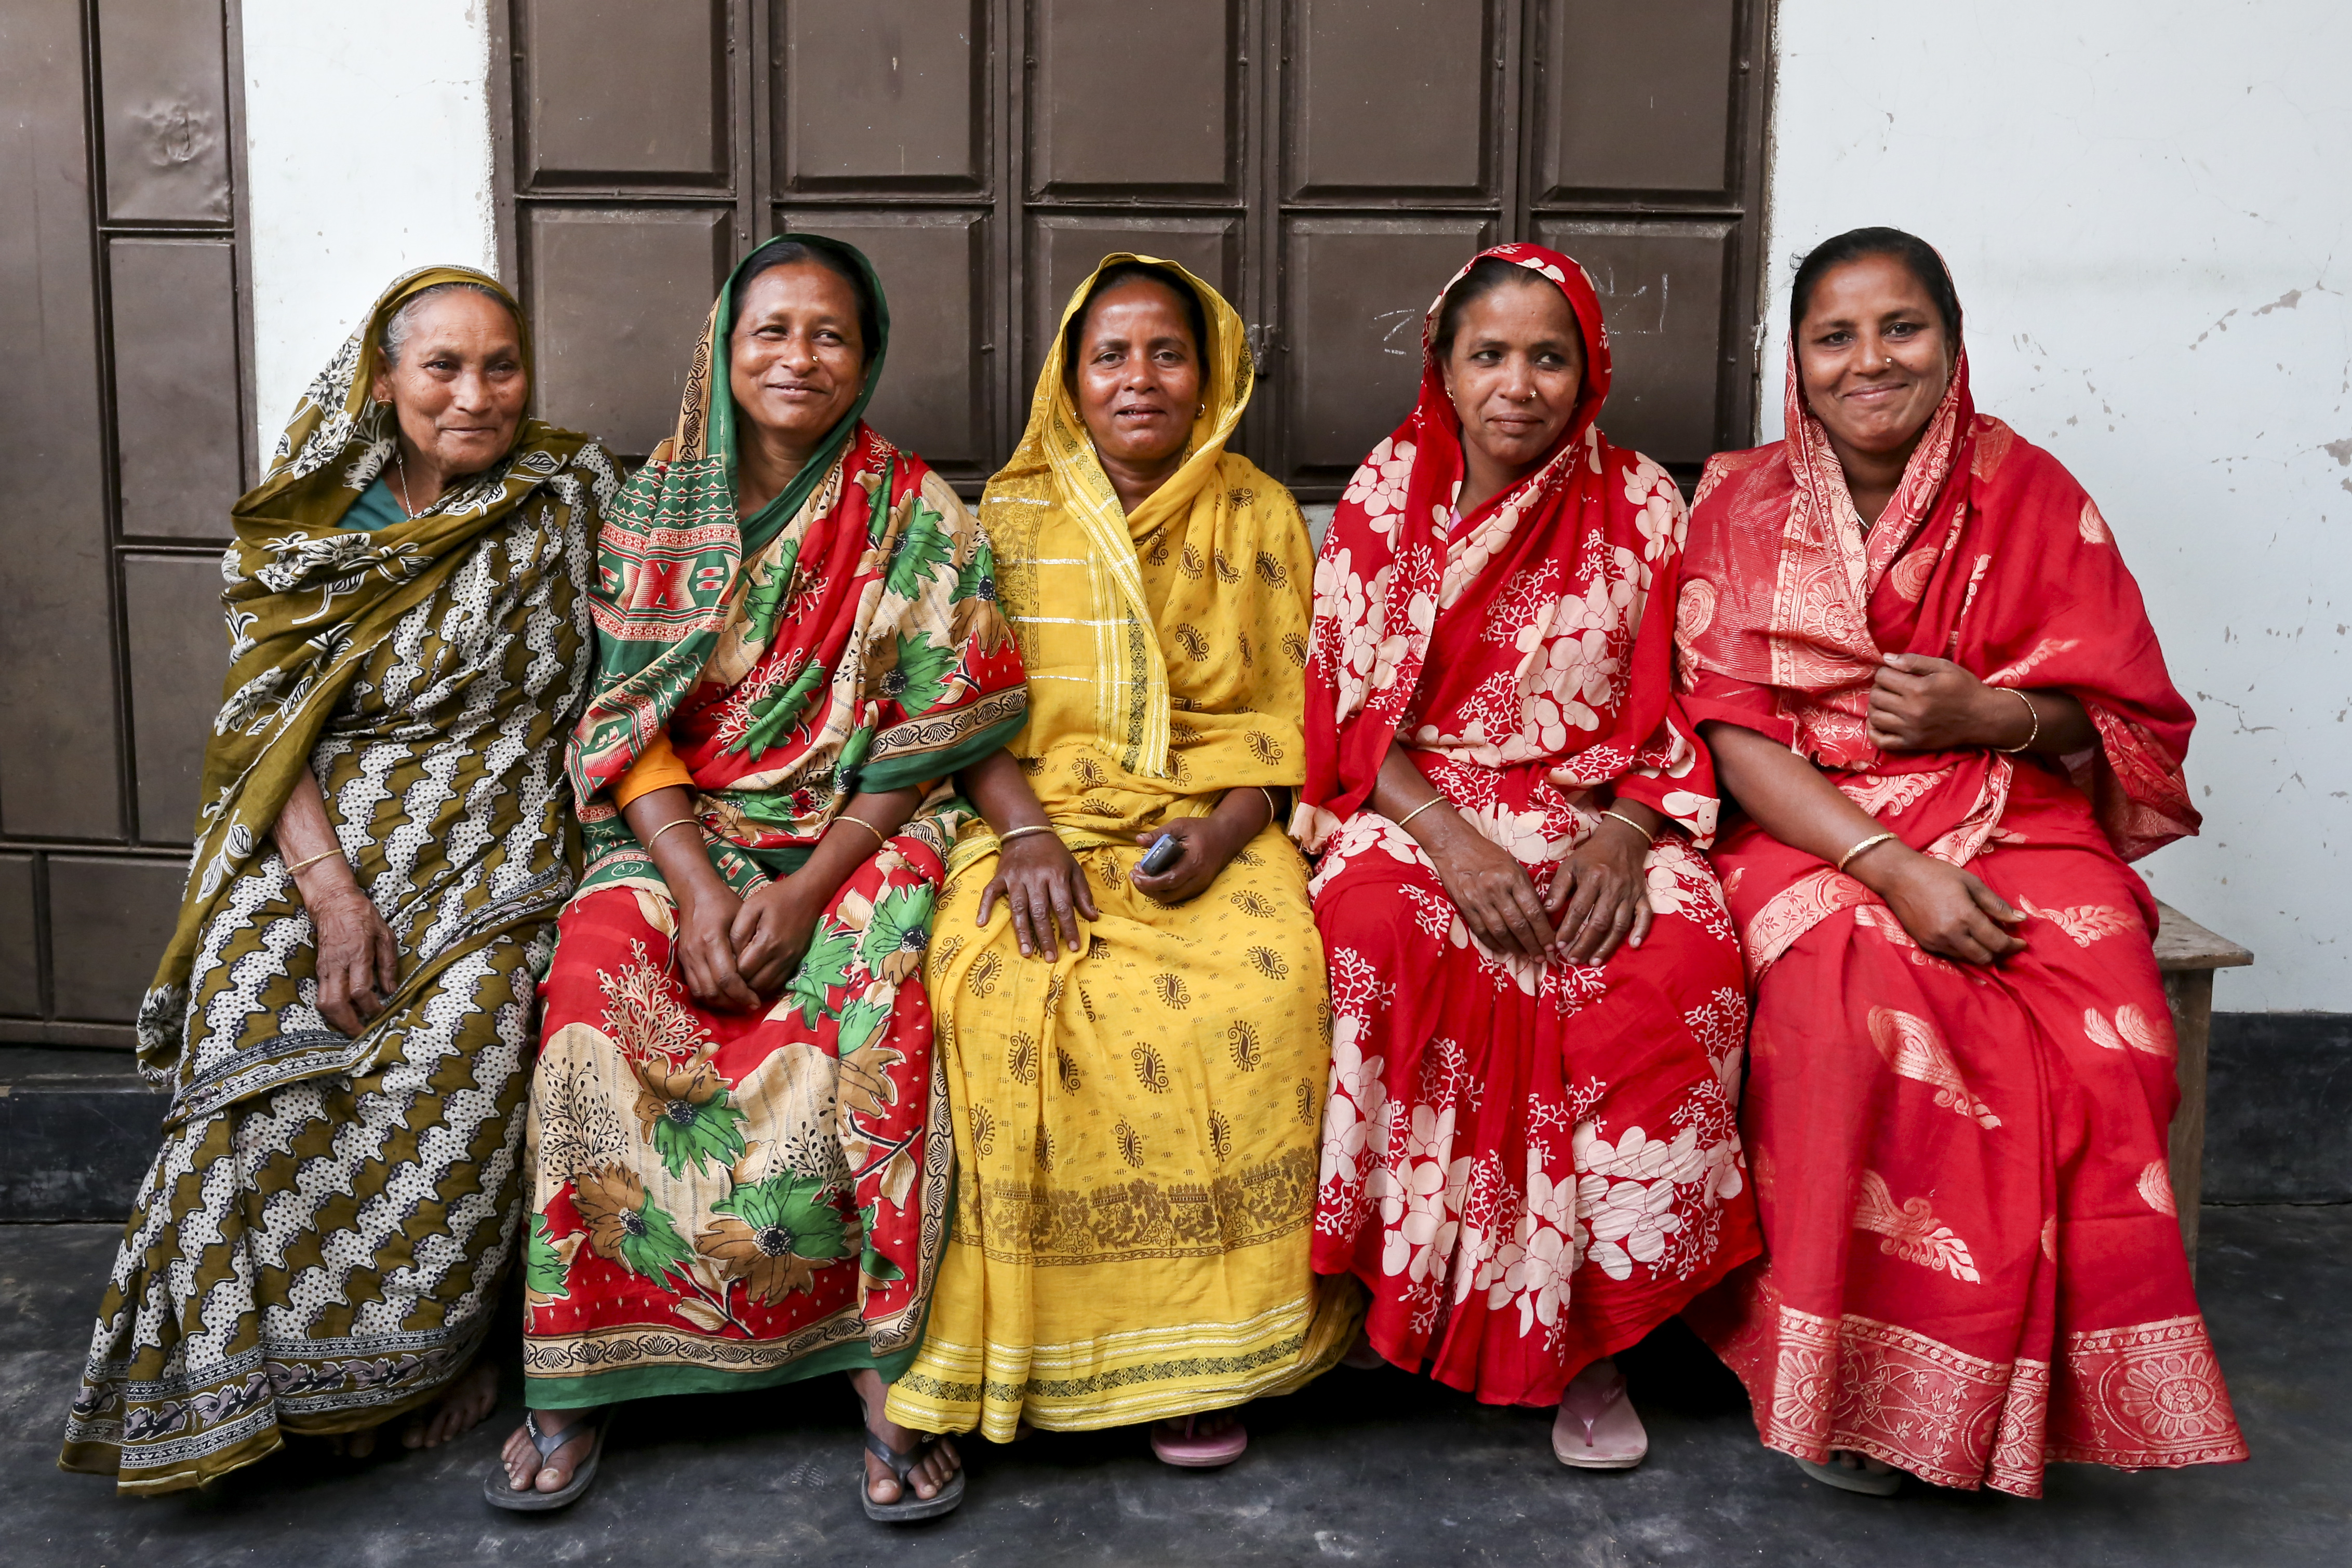 5 women sit together proudly looking into the camera